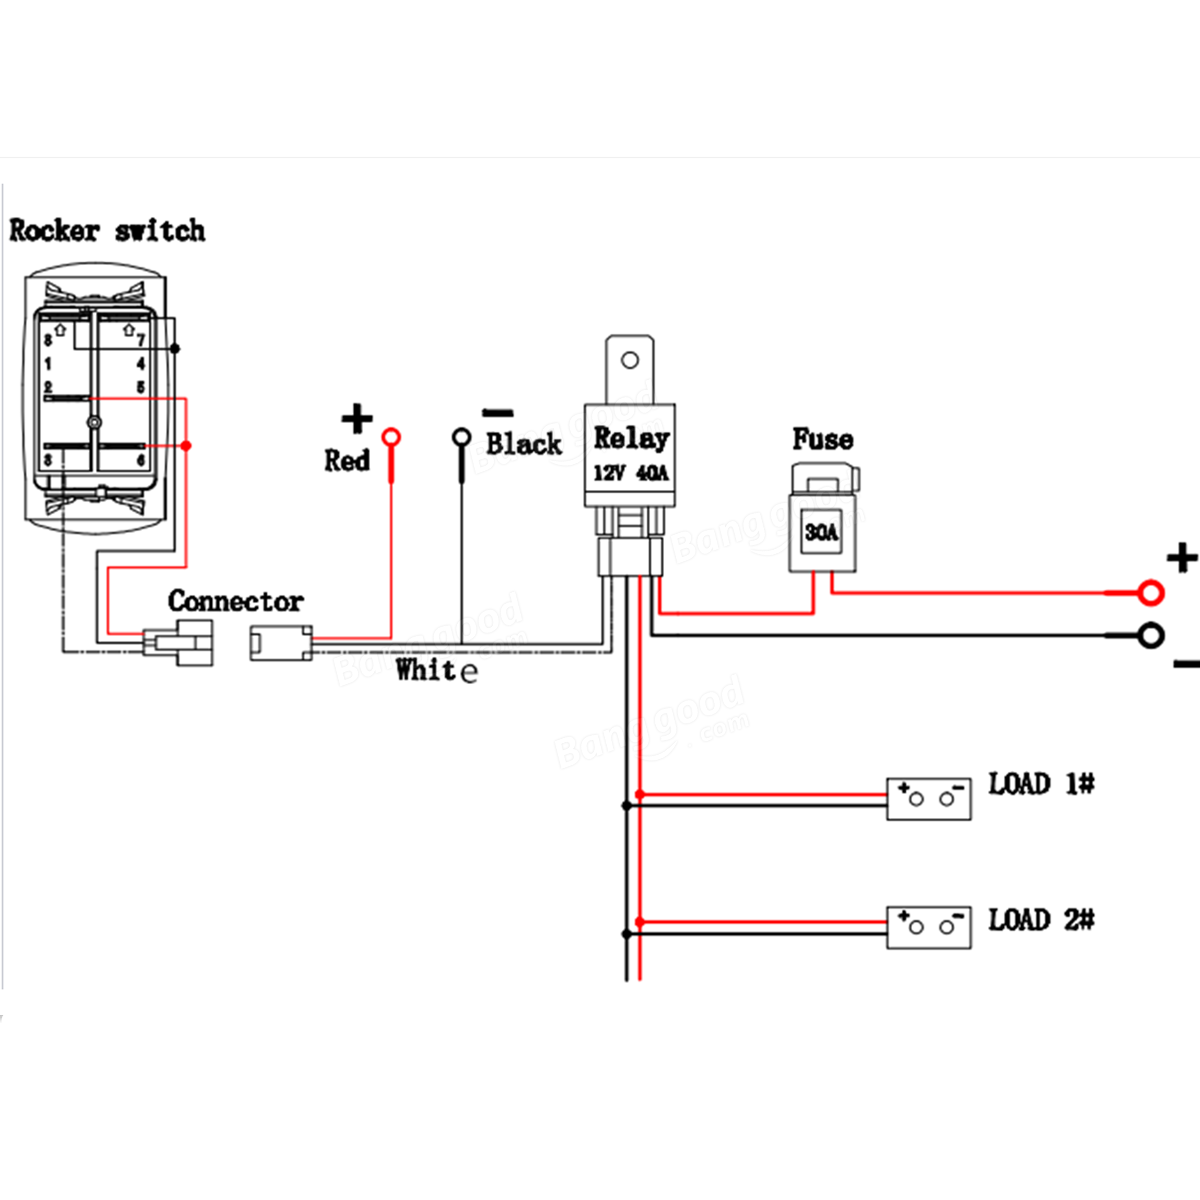 9d6bacef 8f68 448c b477 28191a6abe22 12 v 40a wiring harness 1990 toyota pickup wiring harness \u2022 wiring nilight led wiring diagram at bayanpartner.co